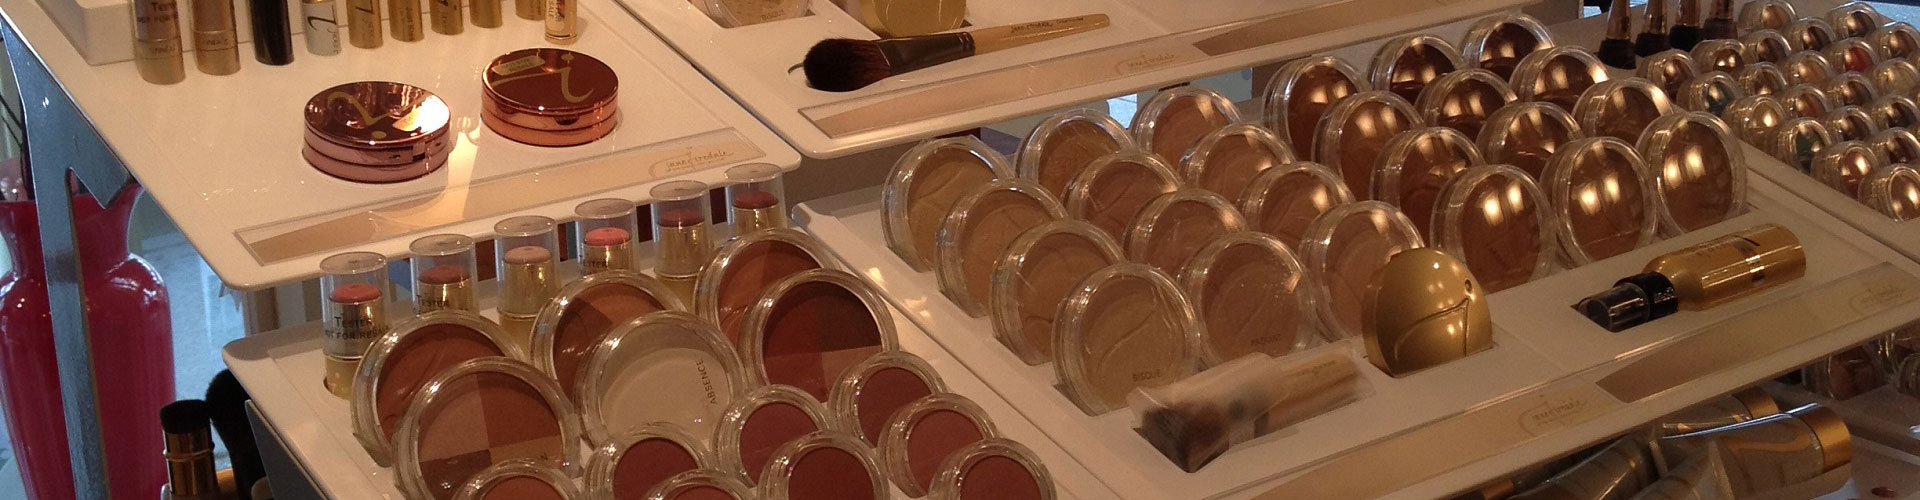 jane-iredale-display-4-b